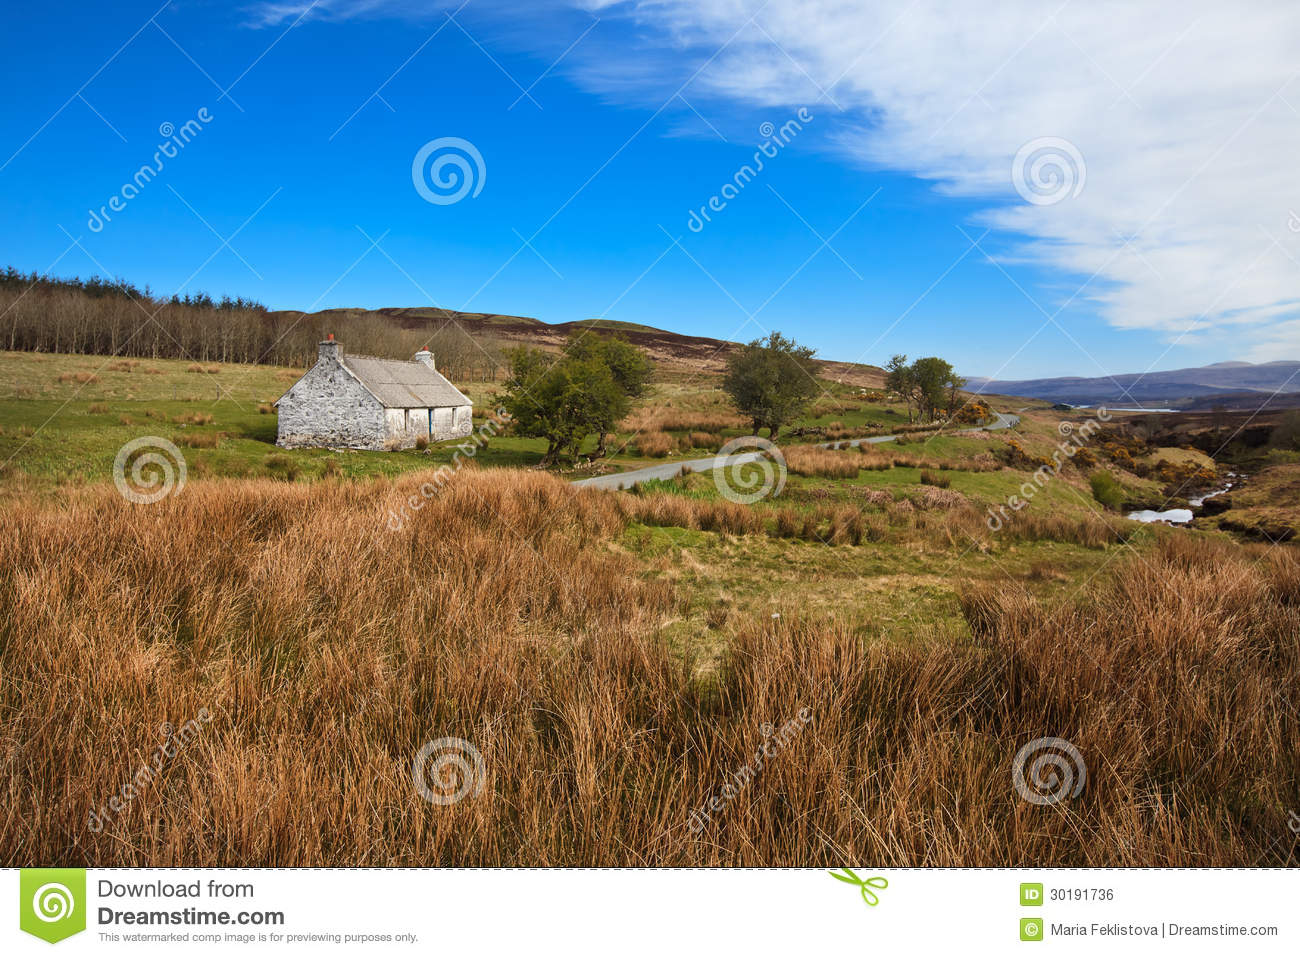 Watch furthermore Chaletcragganmorechamonix wordpress moreover Royalty Free Stock Image Isle Skye Landscape Lonely Traditional Style Scottish Farm House Fields Meadows Forest Horizon Image30191736 also 10 Diy Log Cabins Build For A Rustic Lifestyle By Hand together with Mountain Stone Mine Medieval. on mountain style house plans